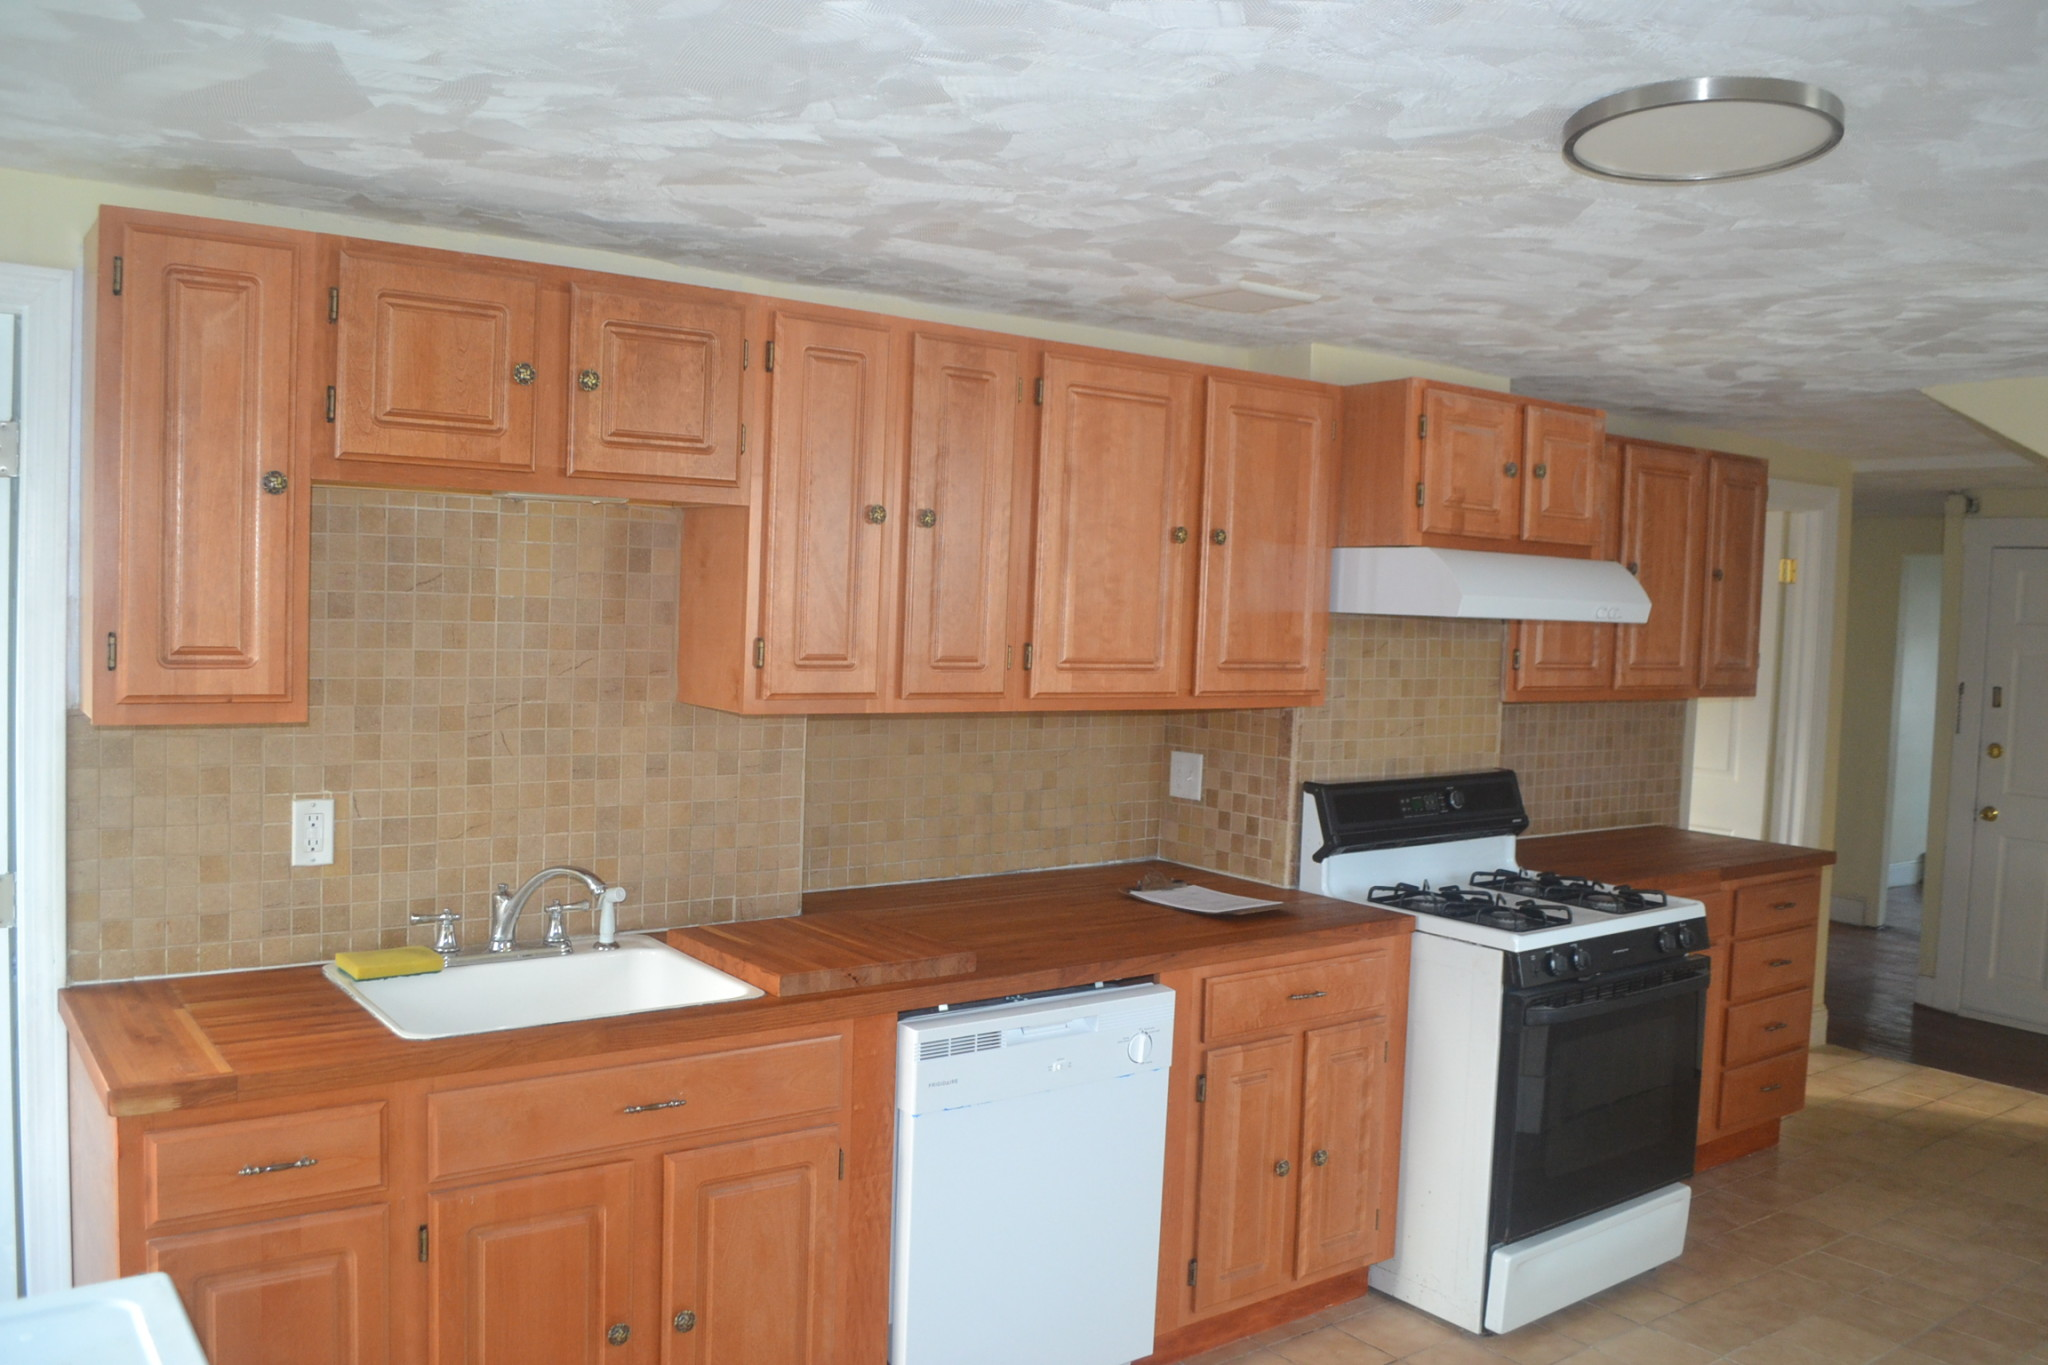 3 Beds, 1 Bath apartment in Boston, Hyde Park for $2,600